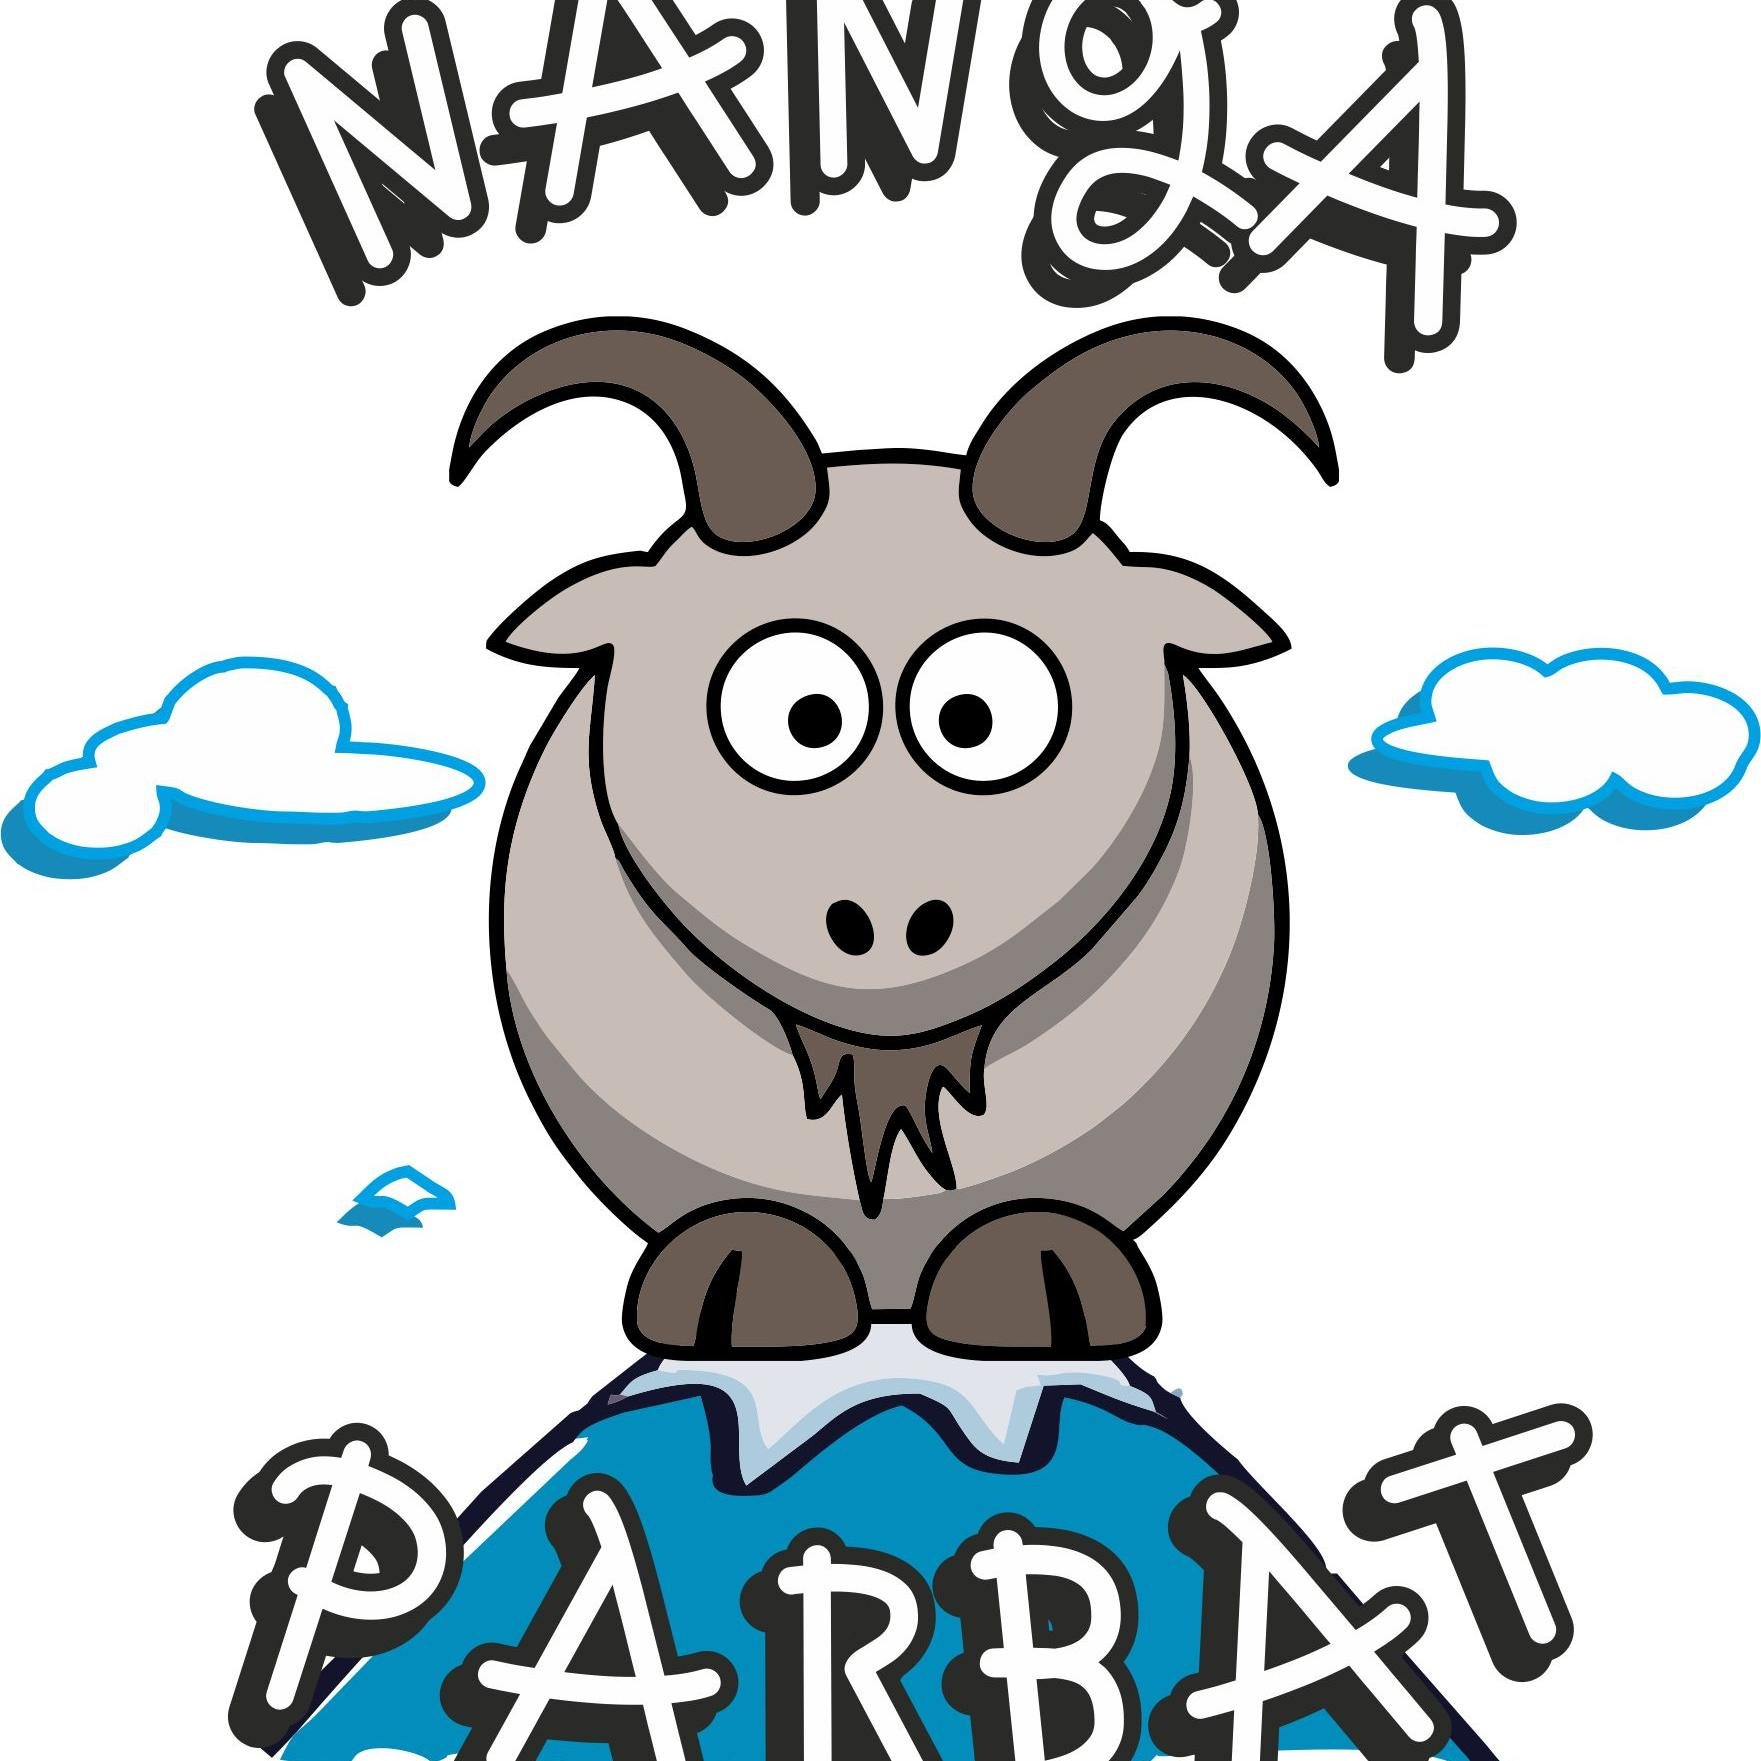 Nanga Parbat clipart #4, Download drawings